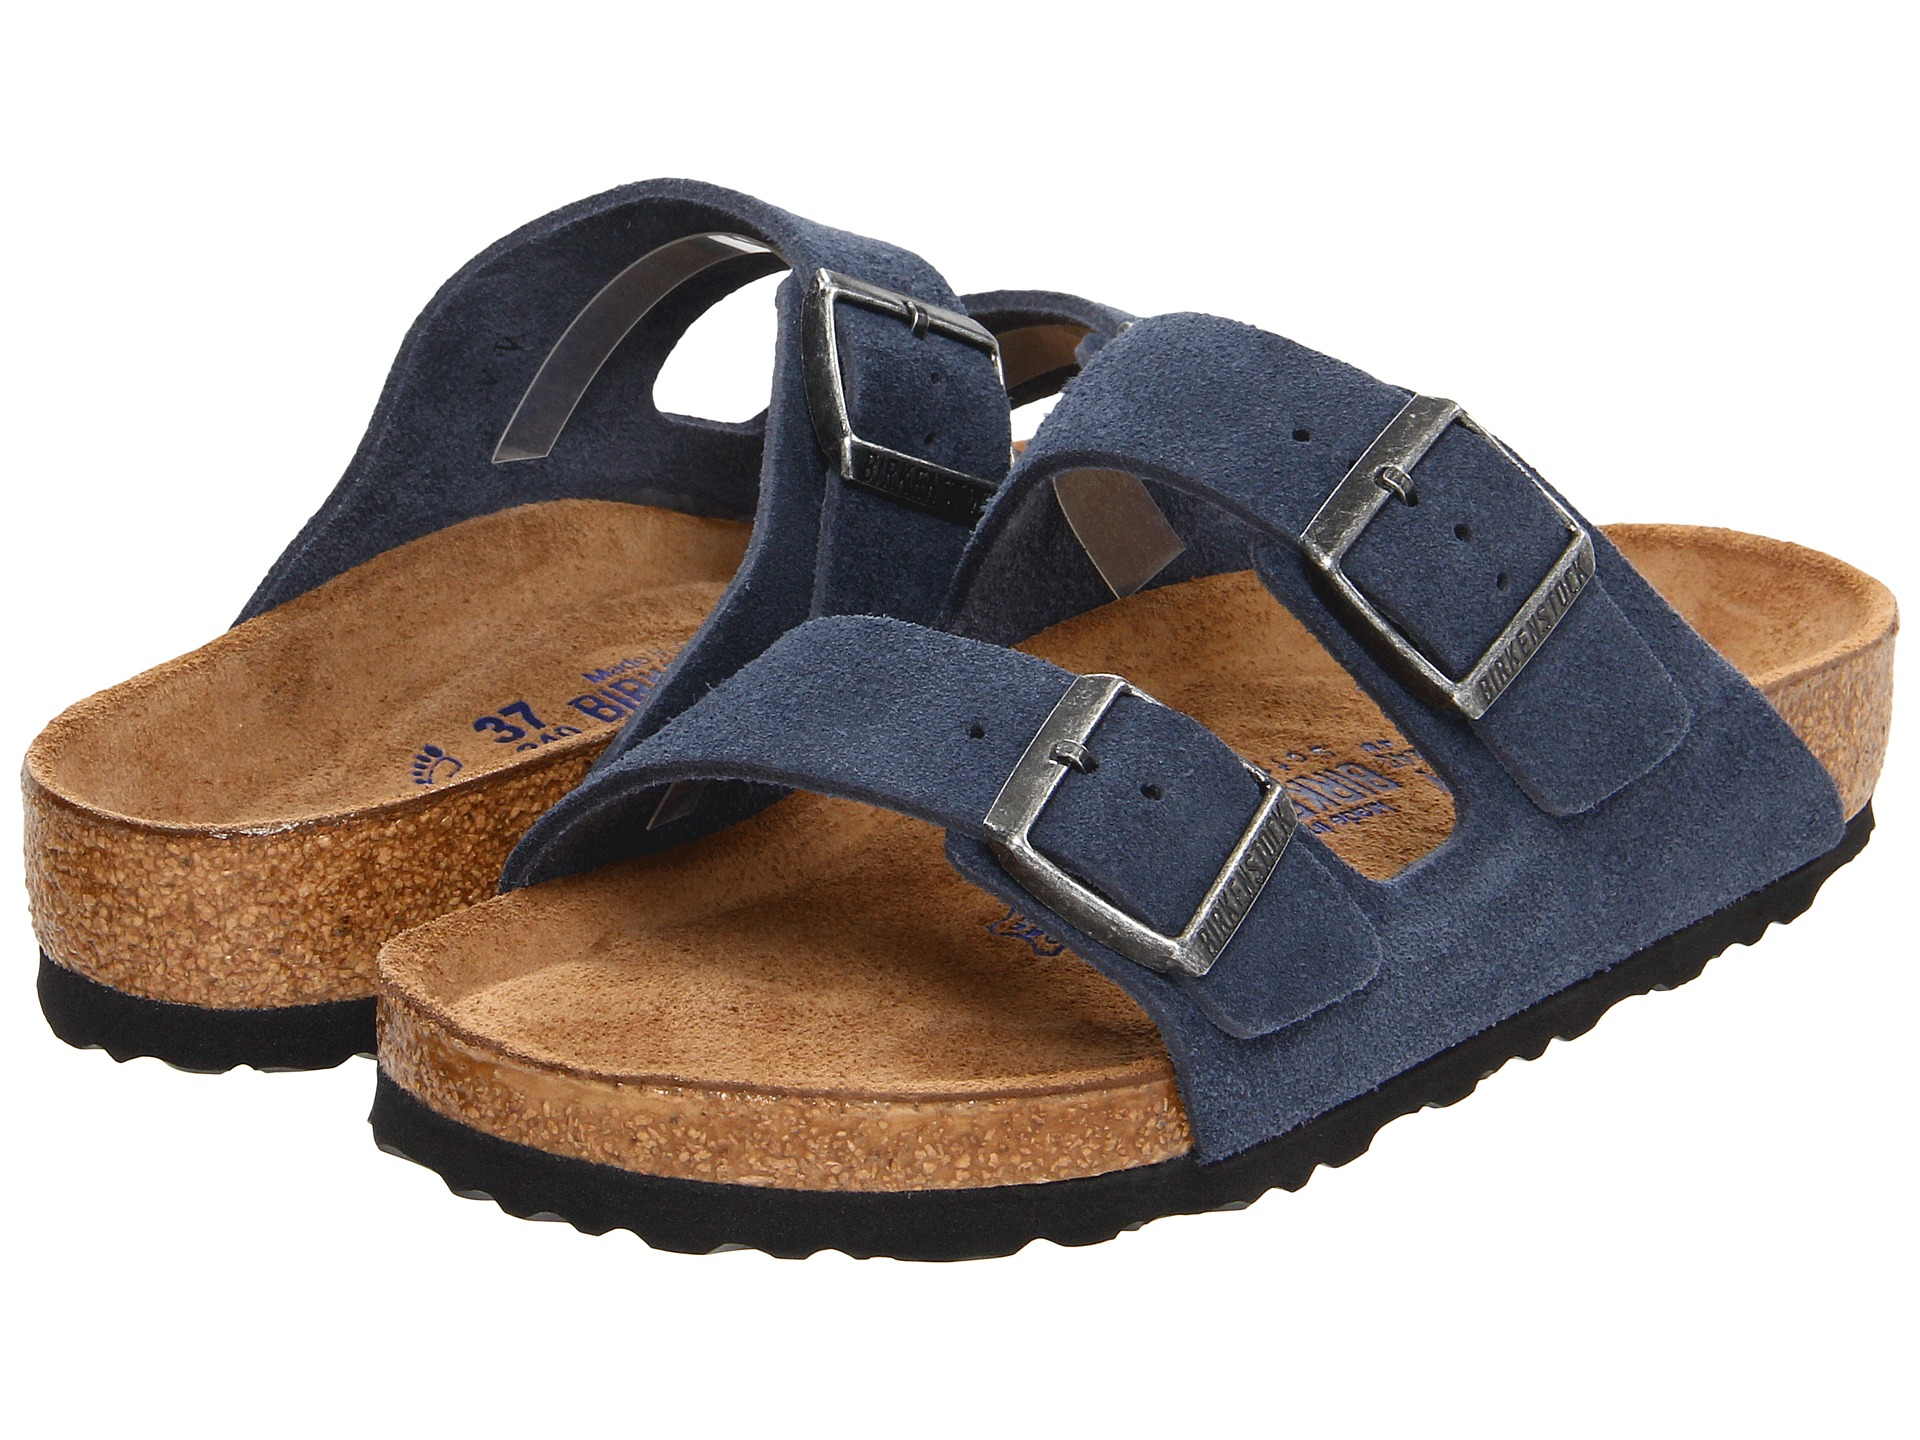 7e19d9cddfc4 Lyst - Birkenstock Arizona Soft Footbed - Suede in Blue